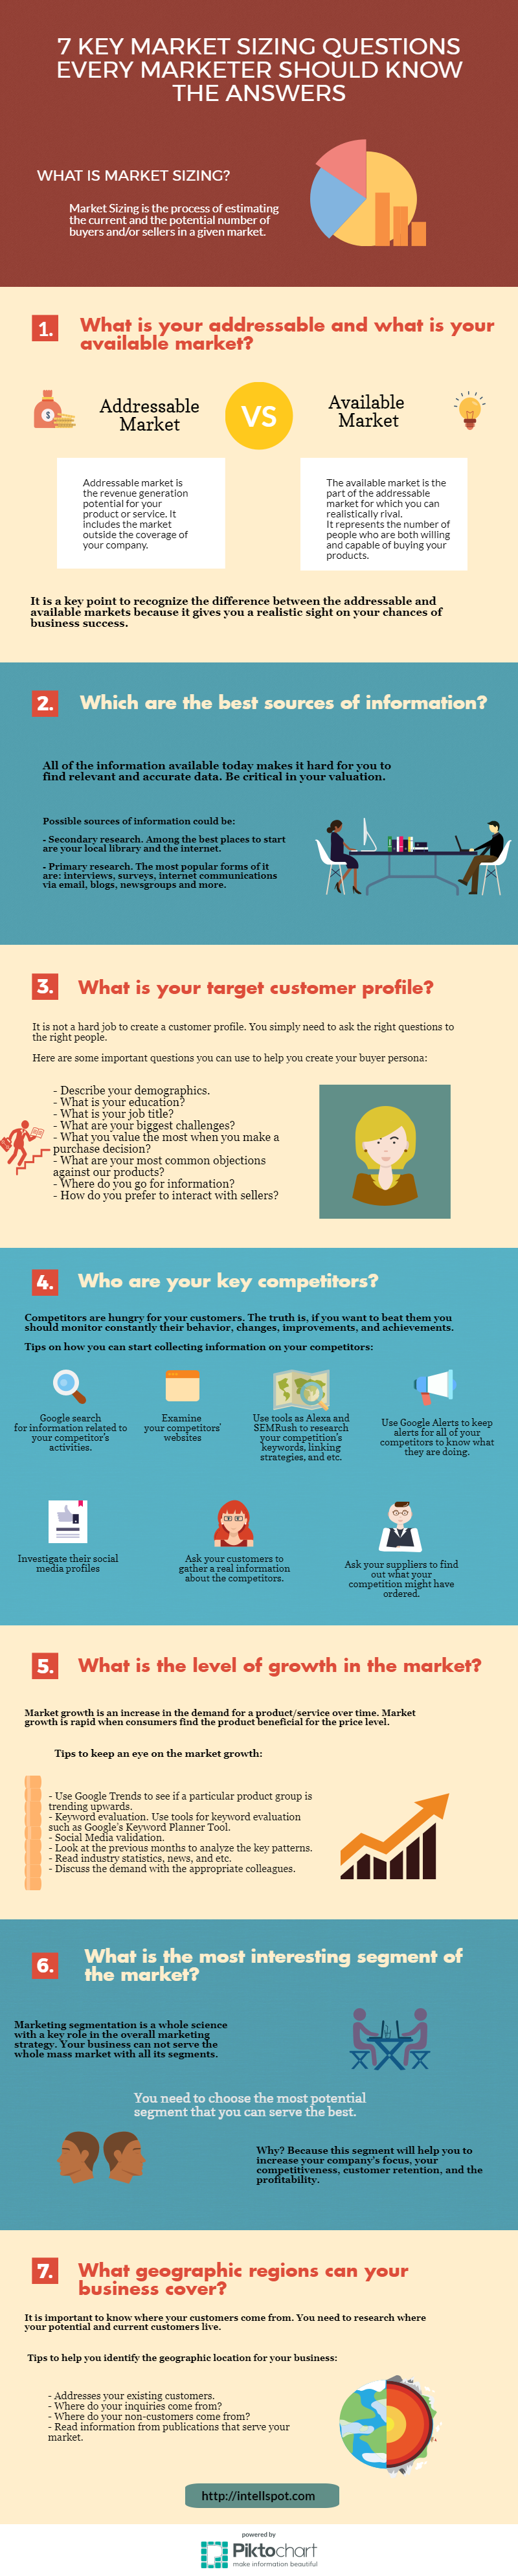 MARKET SIZING QUESTIONS Infographic